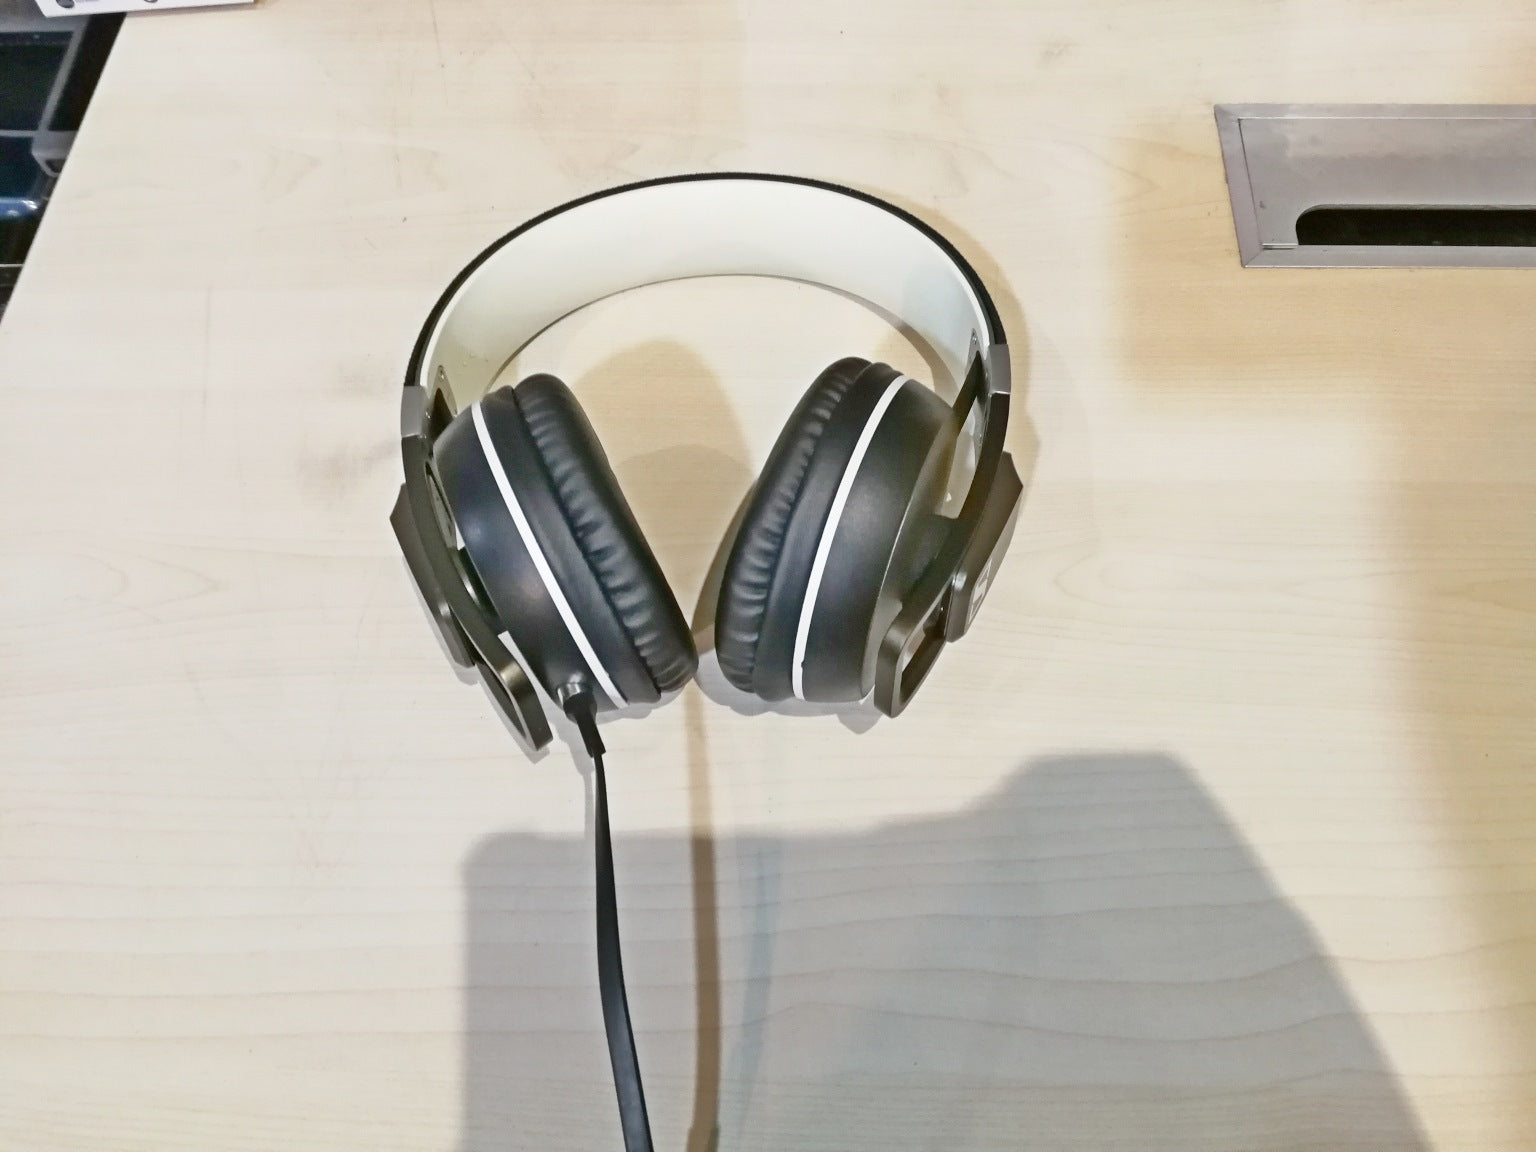 Sennheiser Urbanite XL iOS Demo (SS15) - B - Jaben - The Little Headphone Store